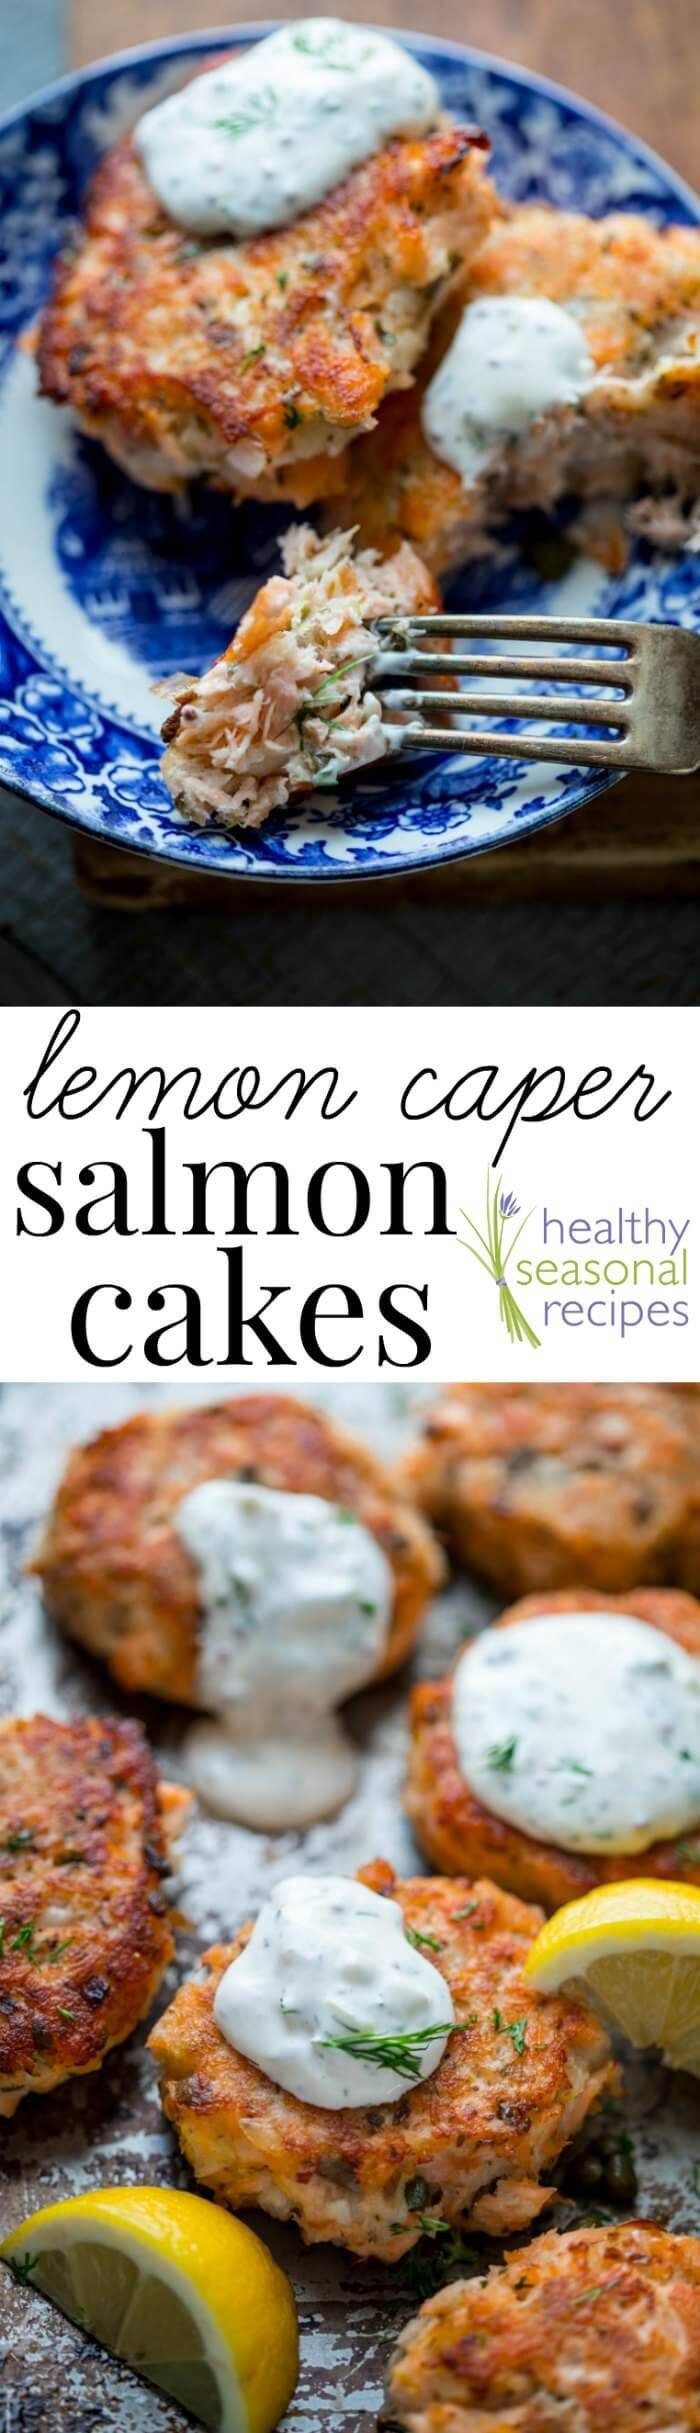 Turn left-over cooked salmon into elegant crispy salmon cakes with lemon zest, capers and light tartar sauce made with Greek yogurt. 30 minutes and only 275 calories.